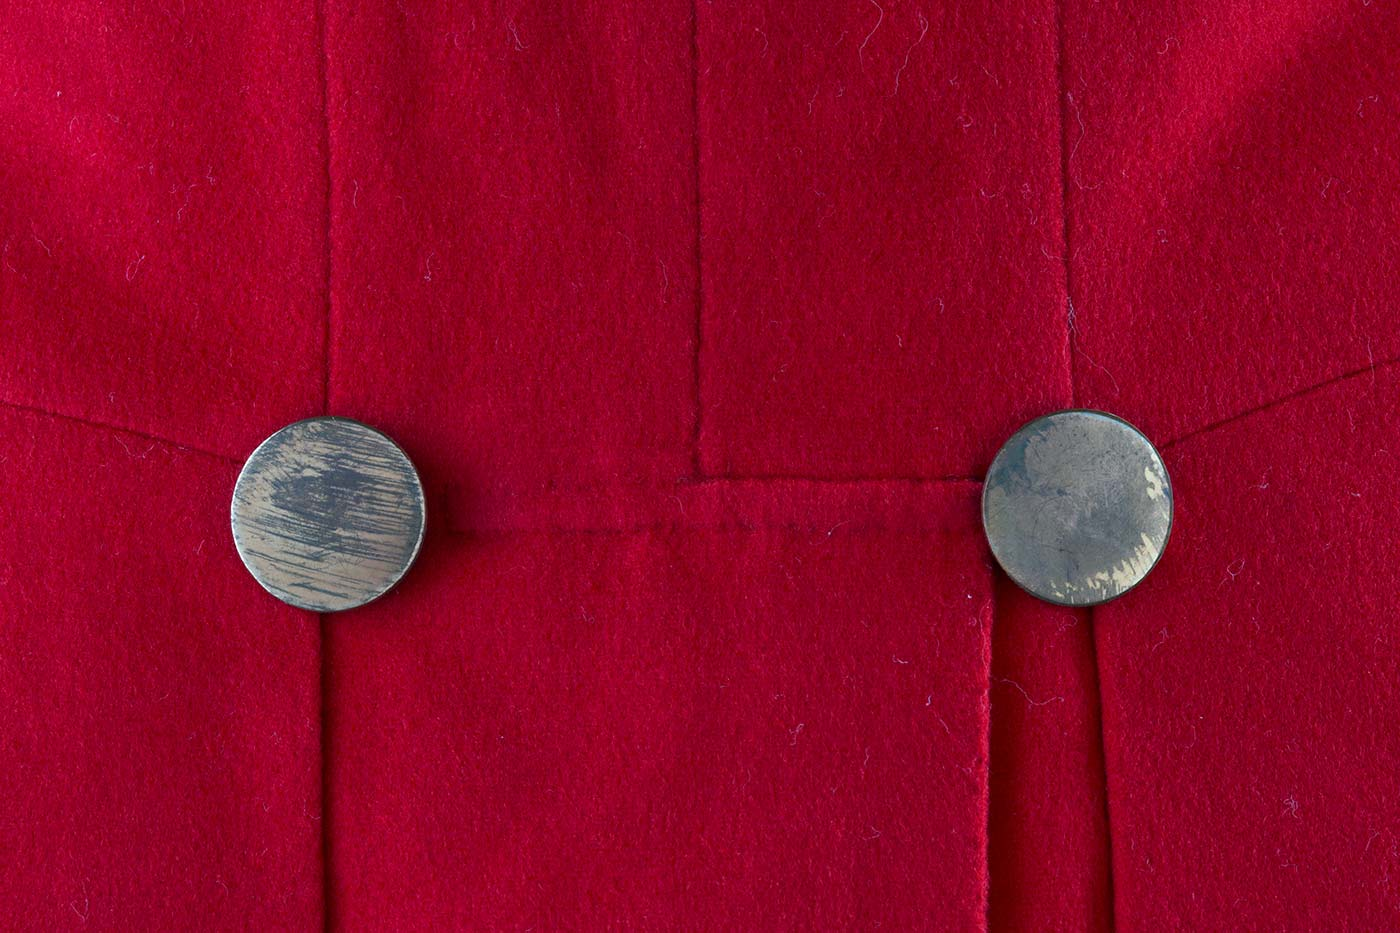 Details of buttons on a red coat. - click to view larger image